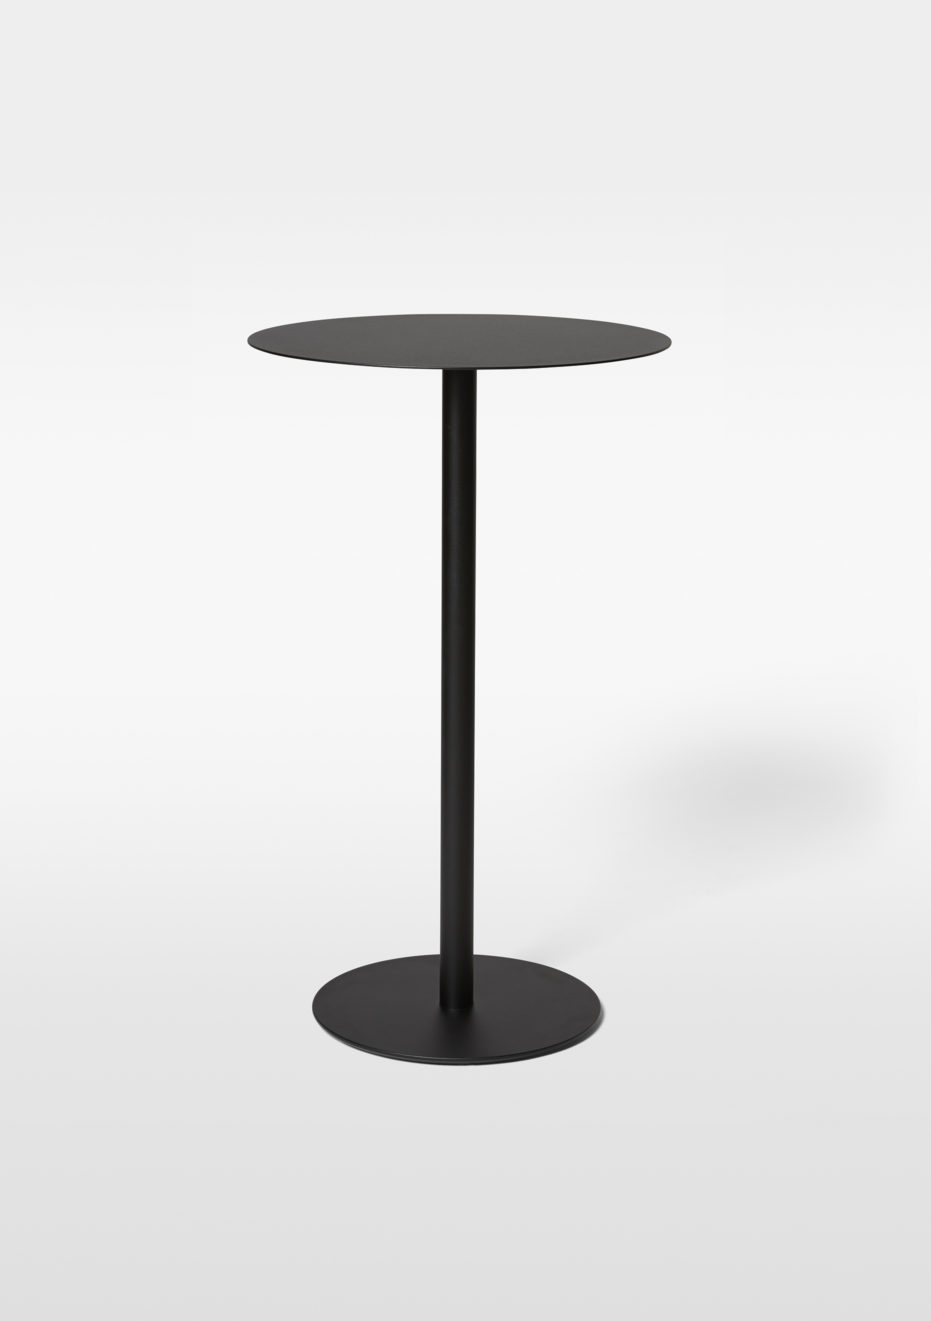 Odette Bar Table / MASSPRODUCTIONS Product Link SPEC SHEET - Inquire within - info@smlpond.com